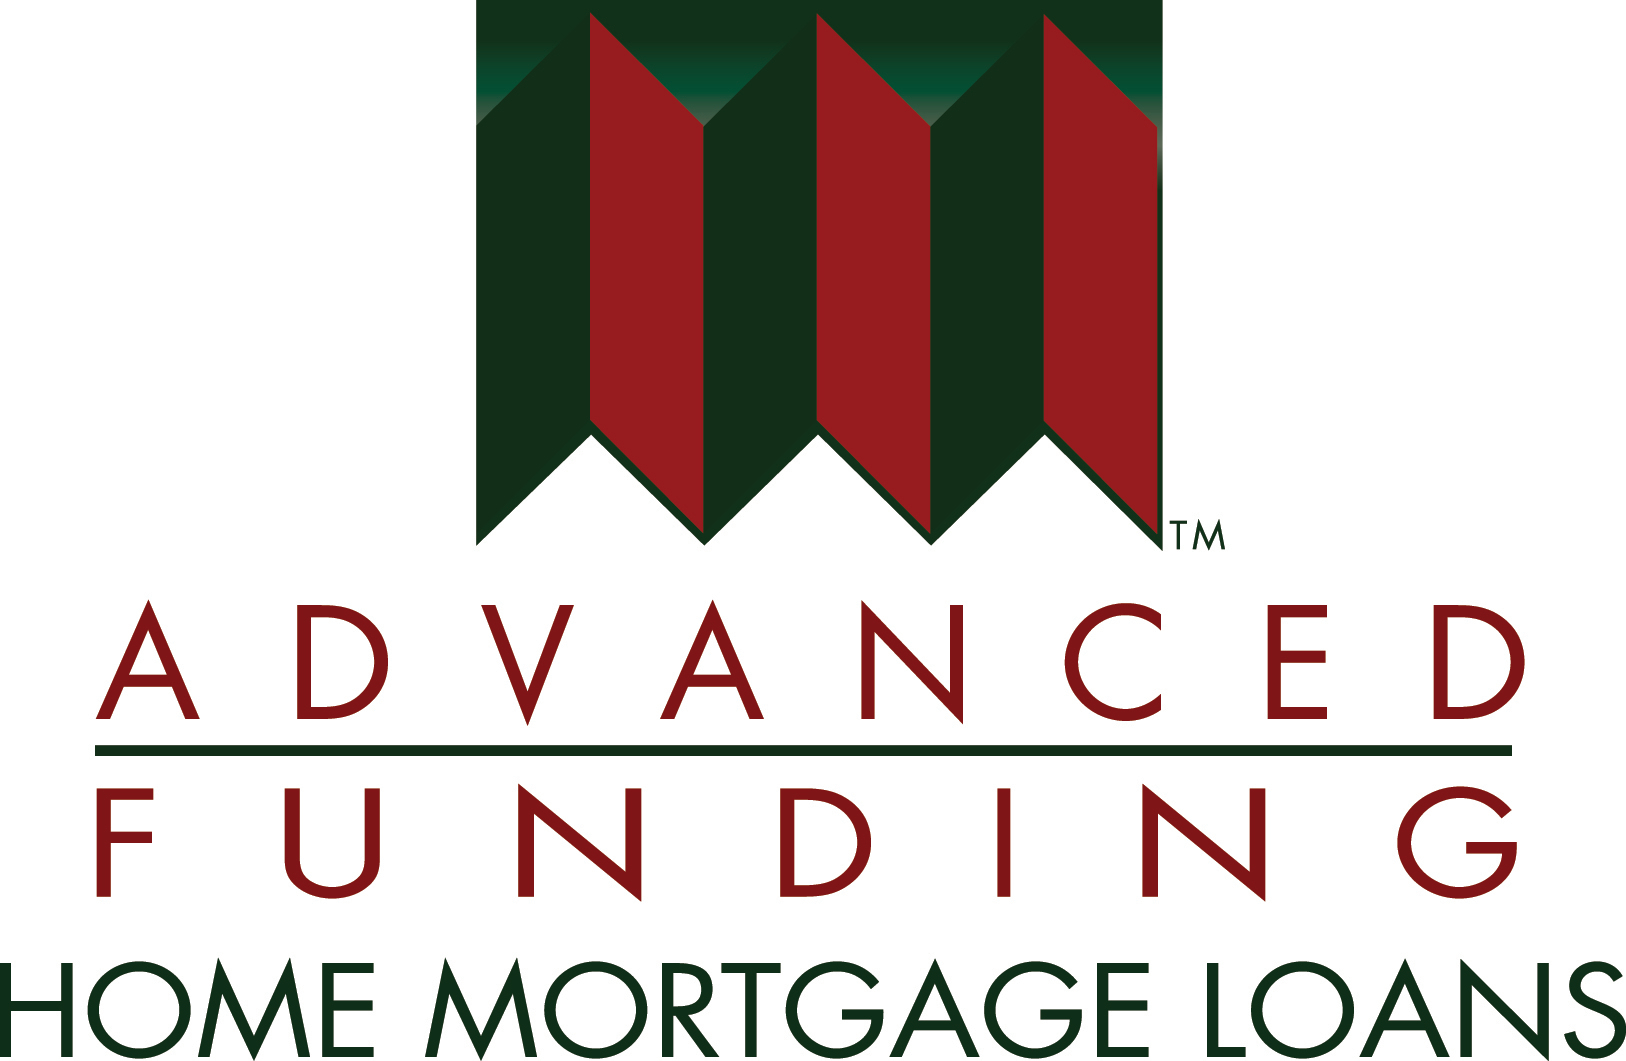 Advanced Funding Home Mortgage Loans - ad image